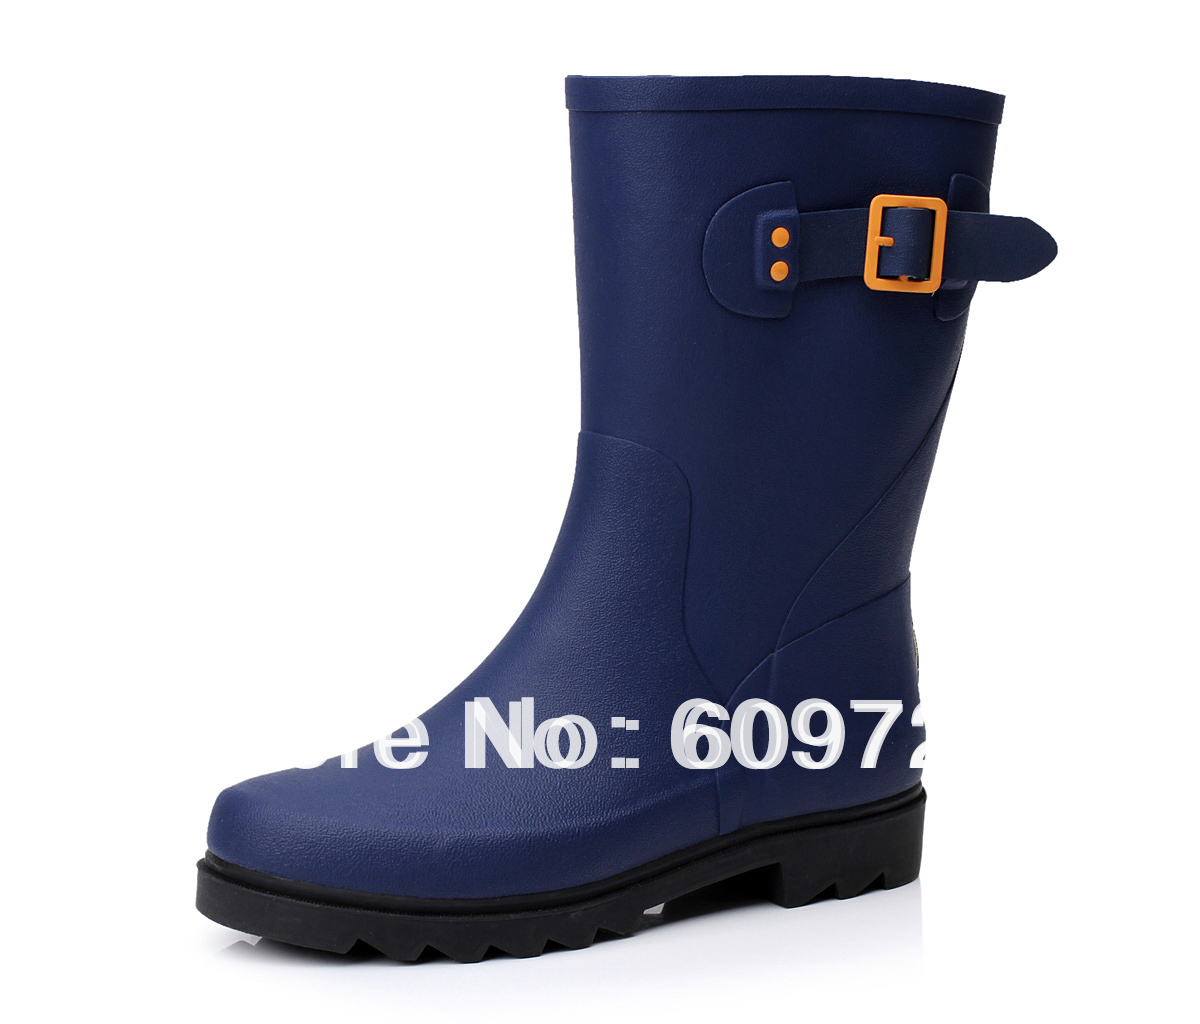 Luxury SGD1495 Knee High Rain Boot Rain Boots For Men And Women Fish Soft